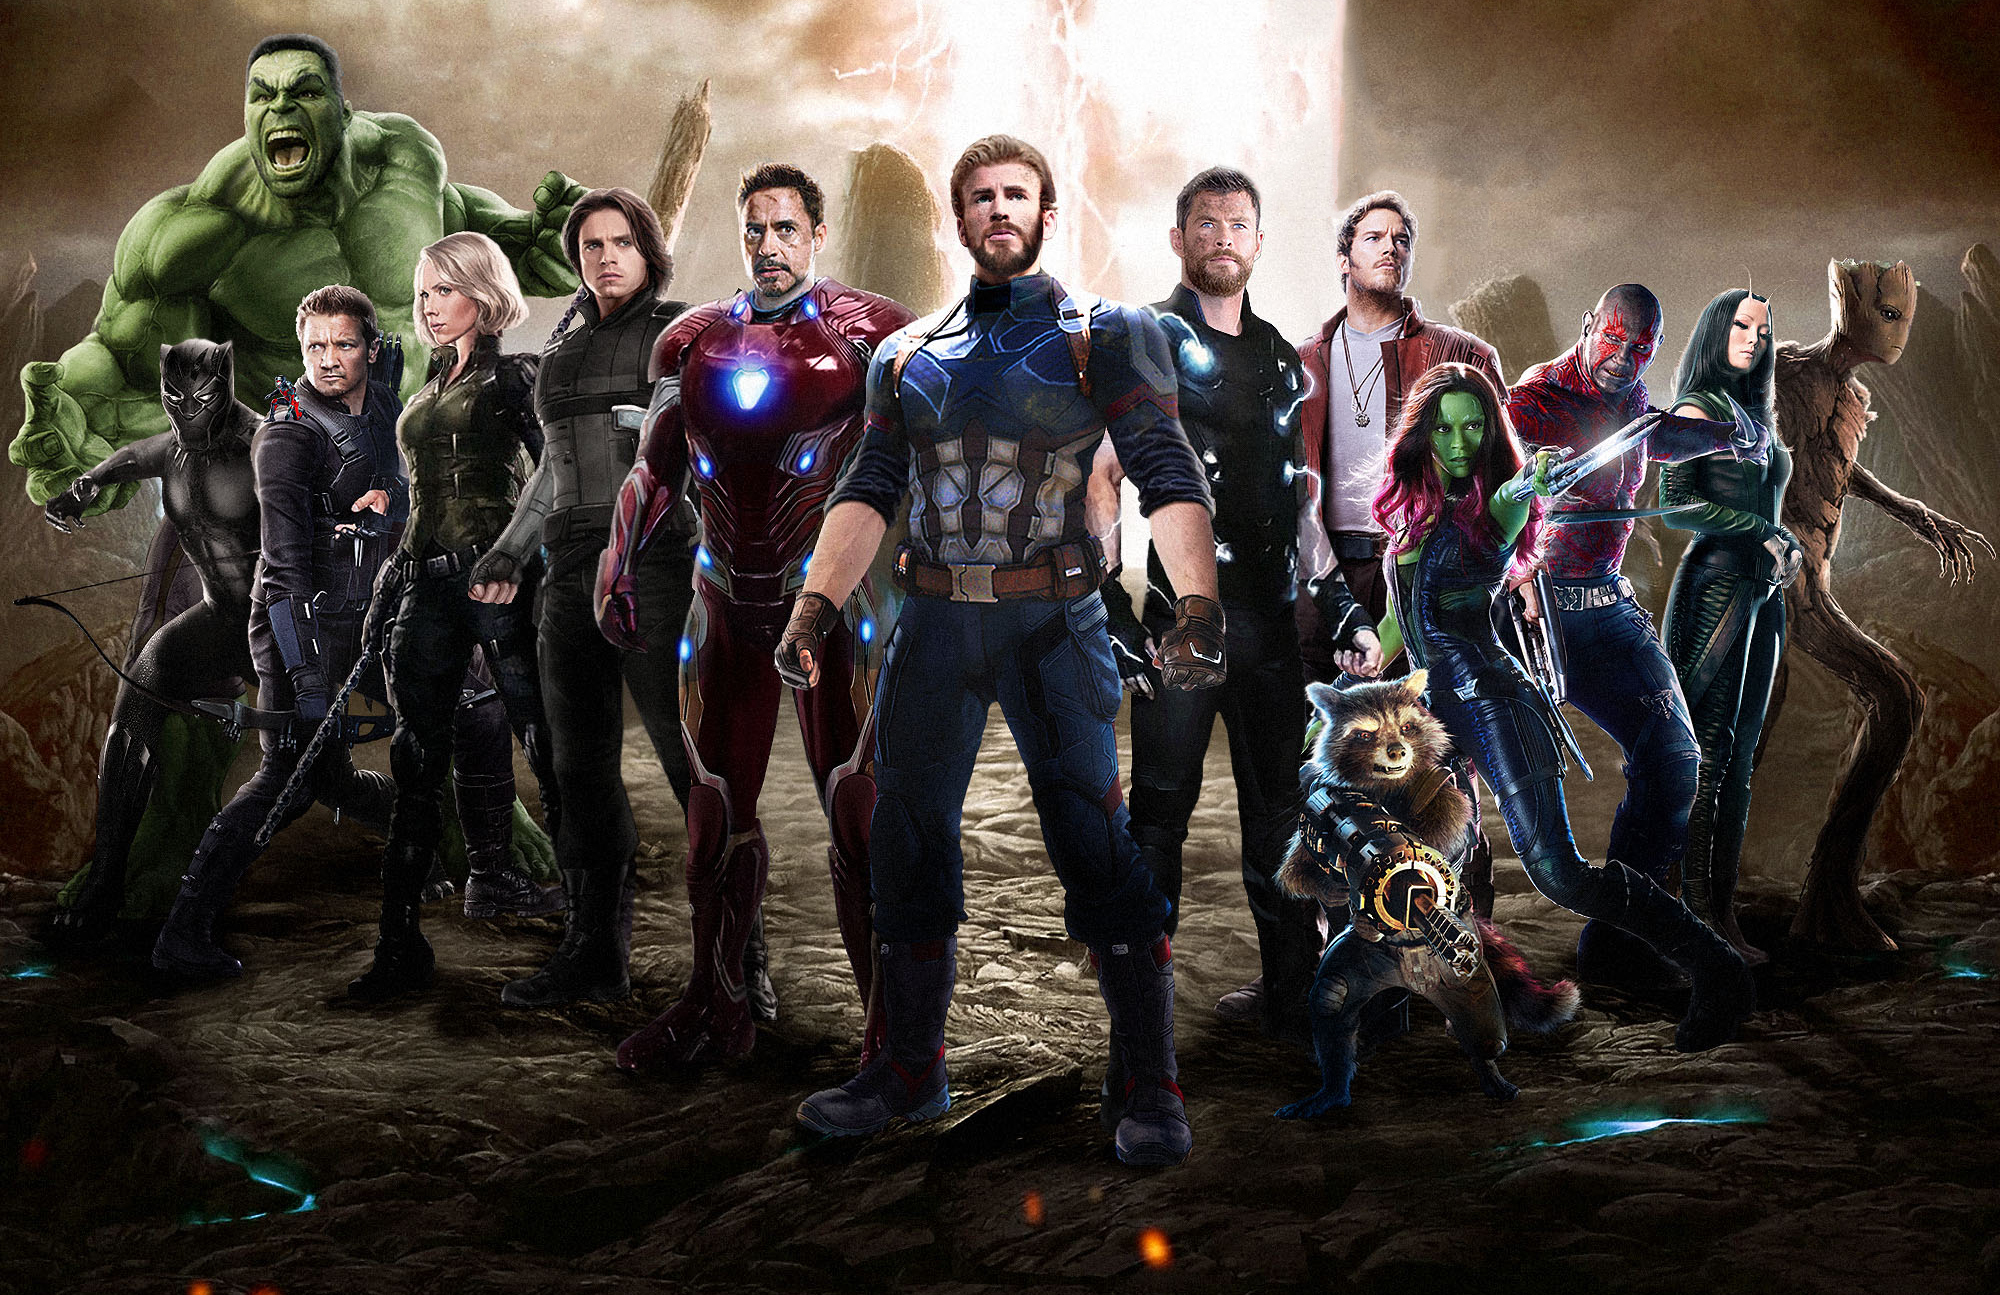 2048x1152 Avengers Infinity War 2018 Movie Fan Art 2048x1152 Resolution Hd 4k Wallpapers Images Backgrounds Photos And Pictures